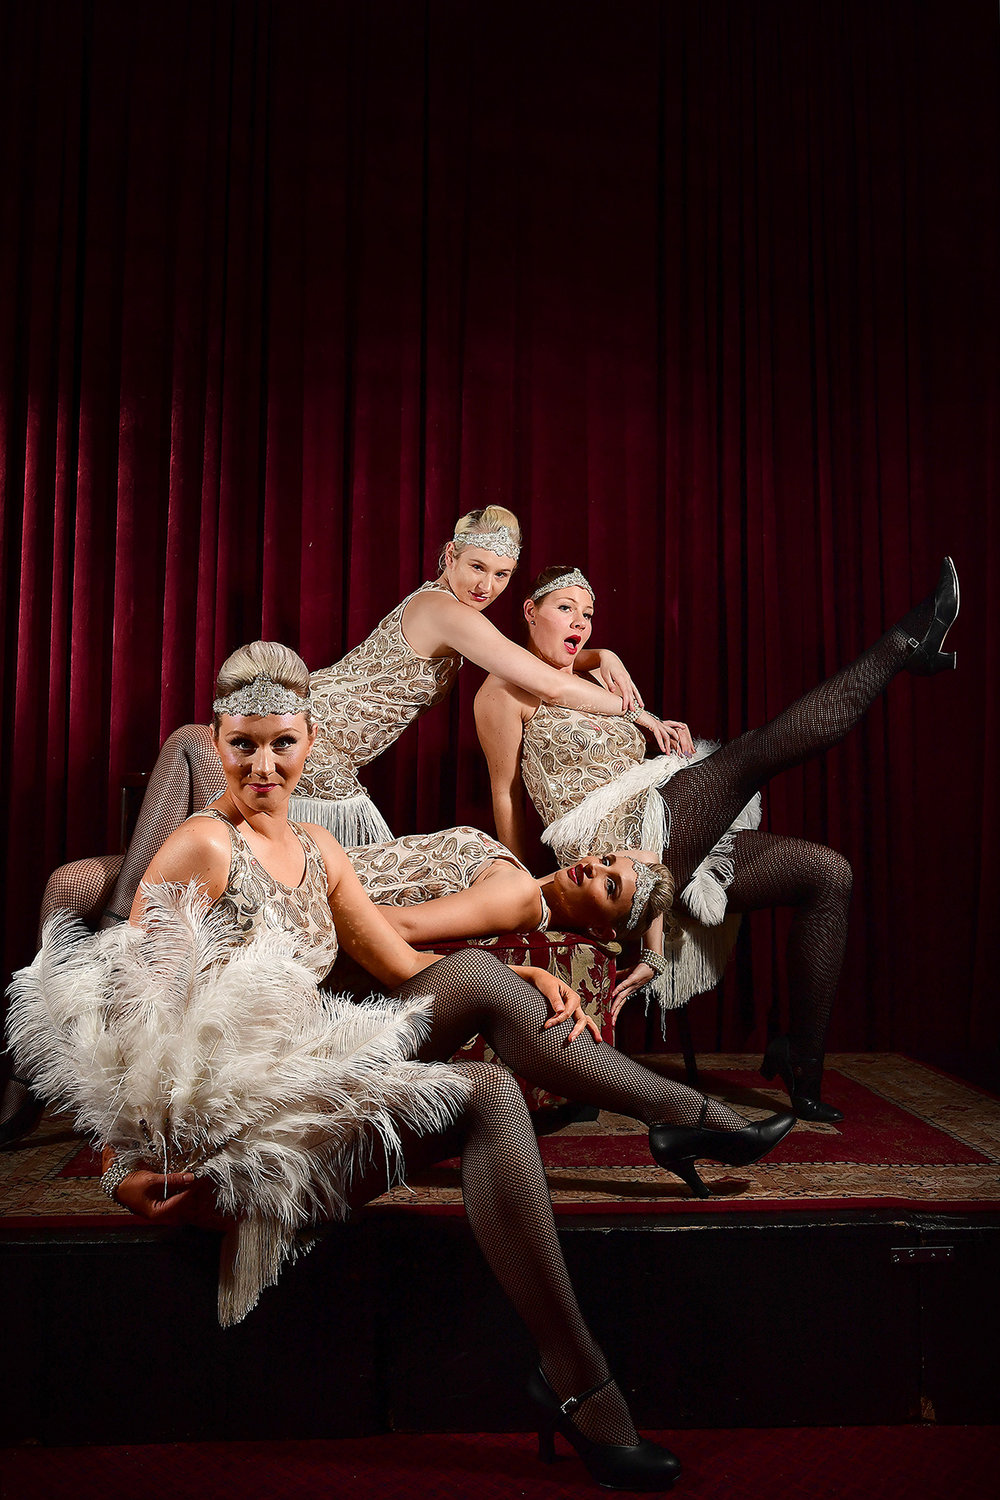 CHP_Export_176945564_Burlesque dancers Marijana MacFarlane front Jaz Greaves back Erin Gold laying &.jpg